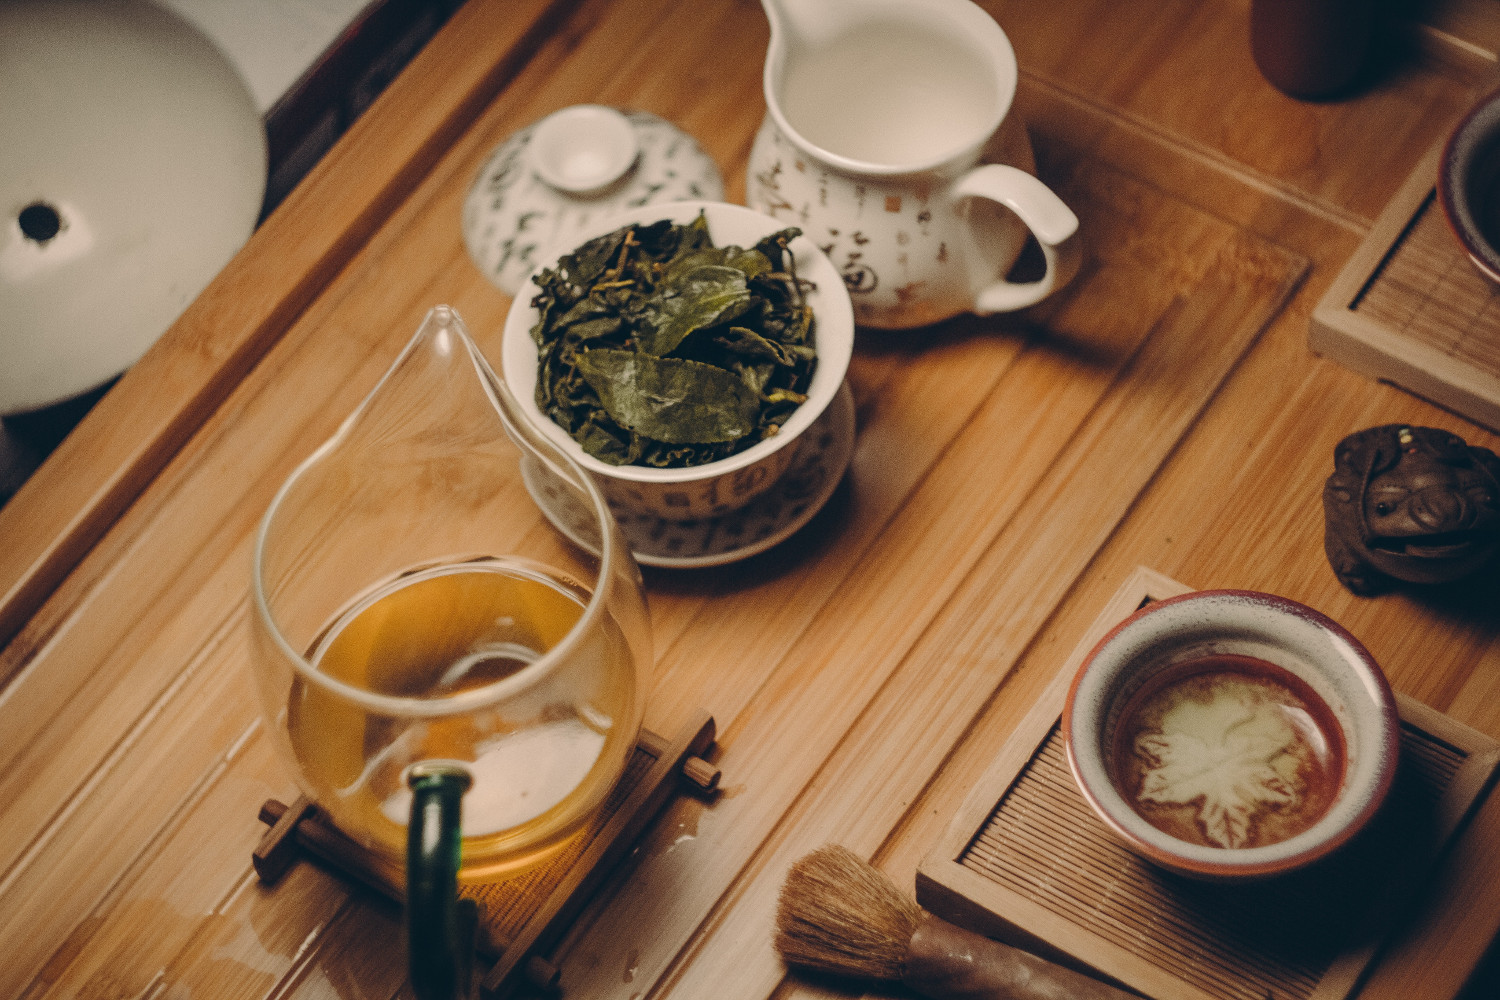 The current state of organic tea